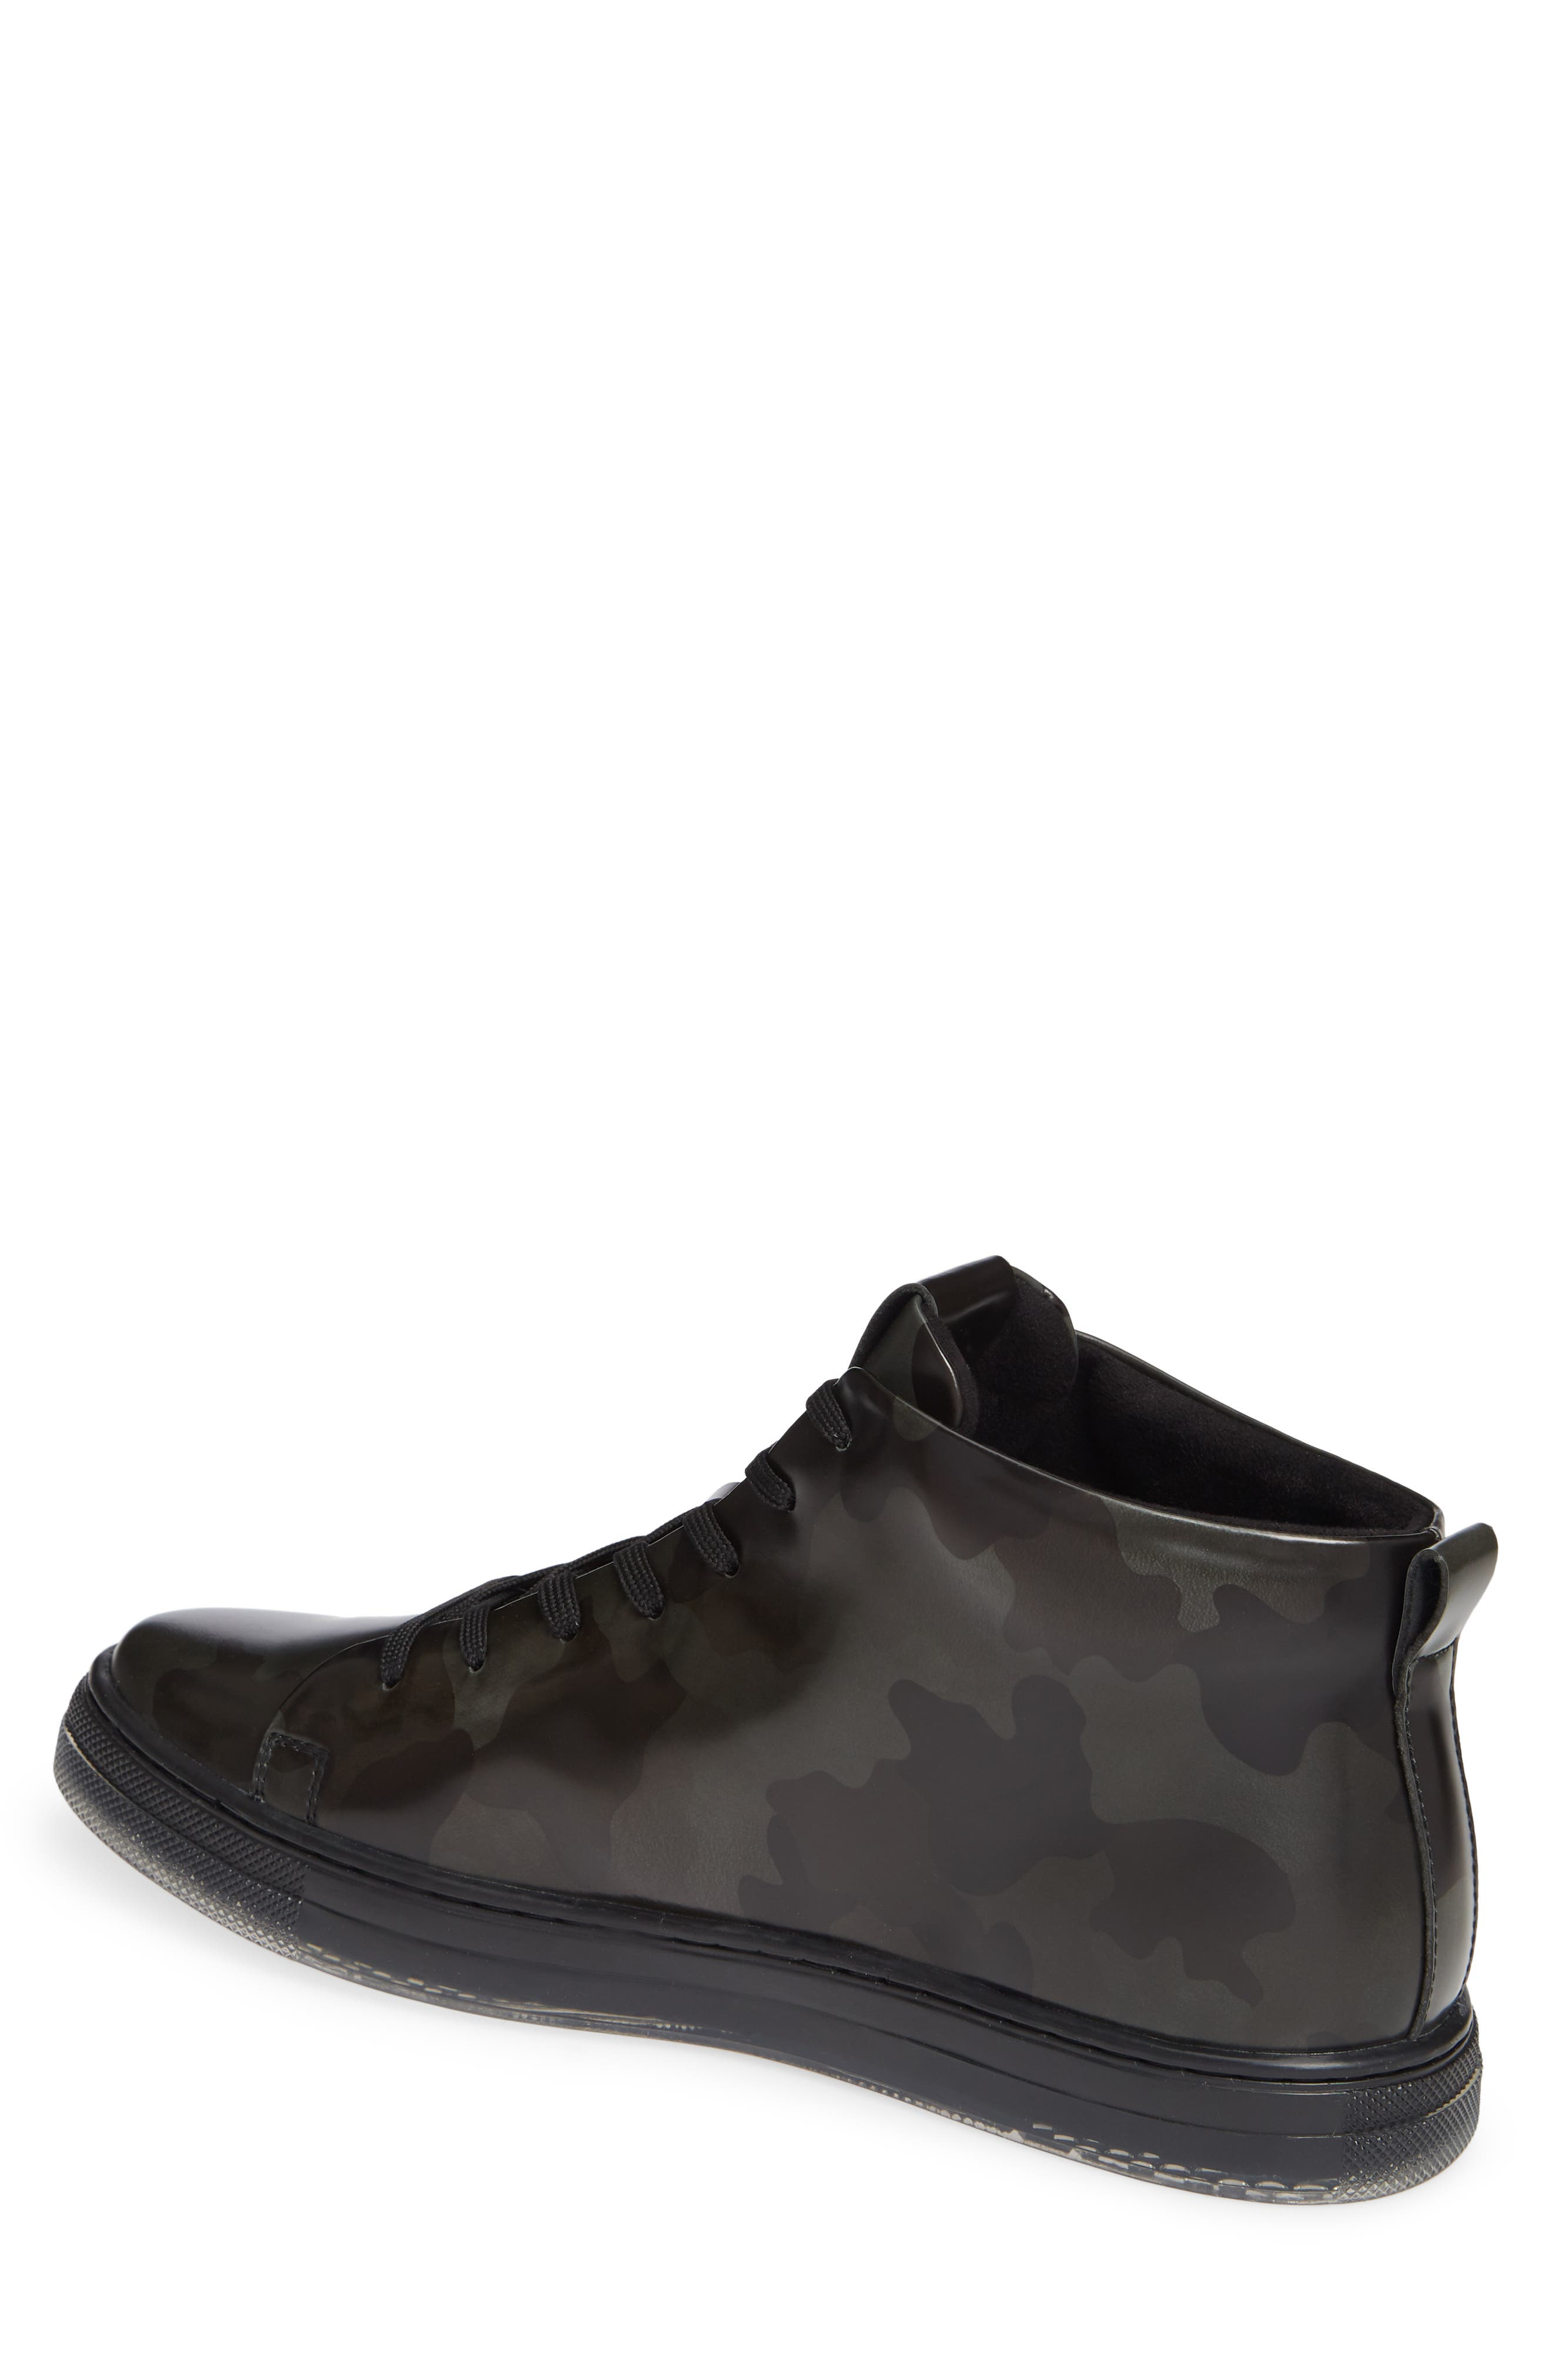 KENNETH COLE NEW YORK, Kenneth Cole Colvin Camo High Top Sneaker, Alternate thumbnail 2, color, OLIVE CAMO LEATHER